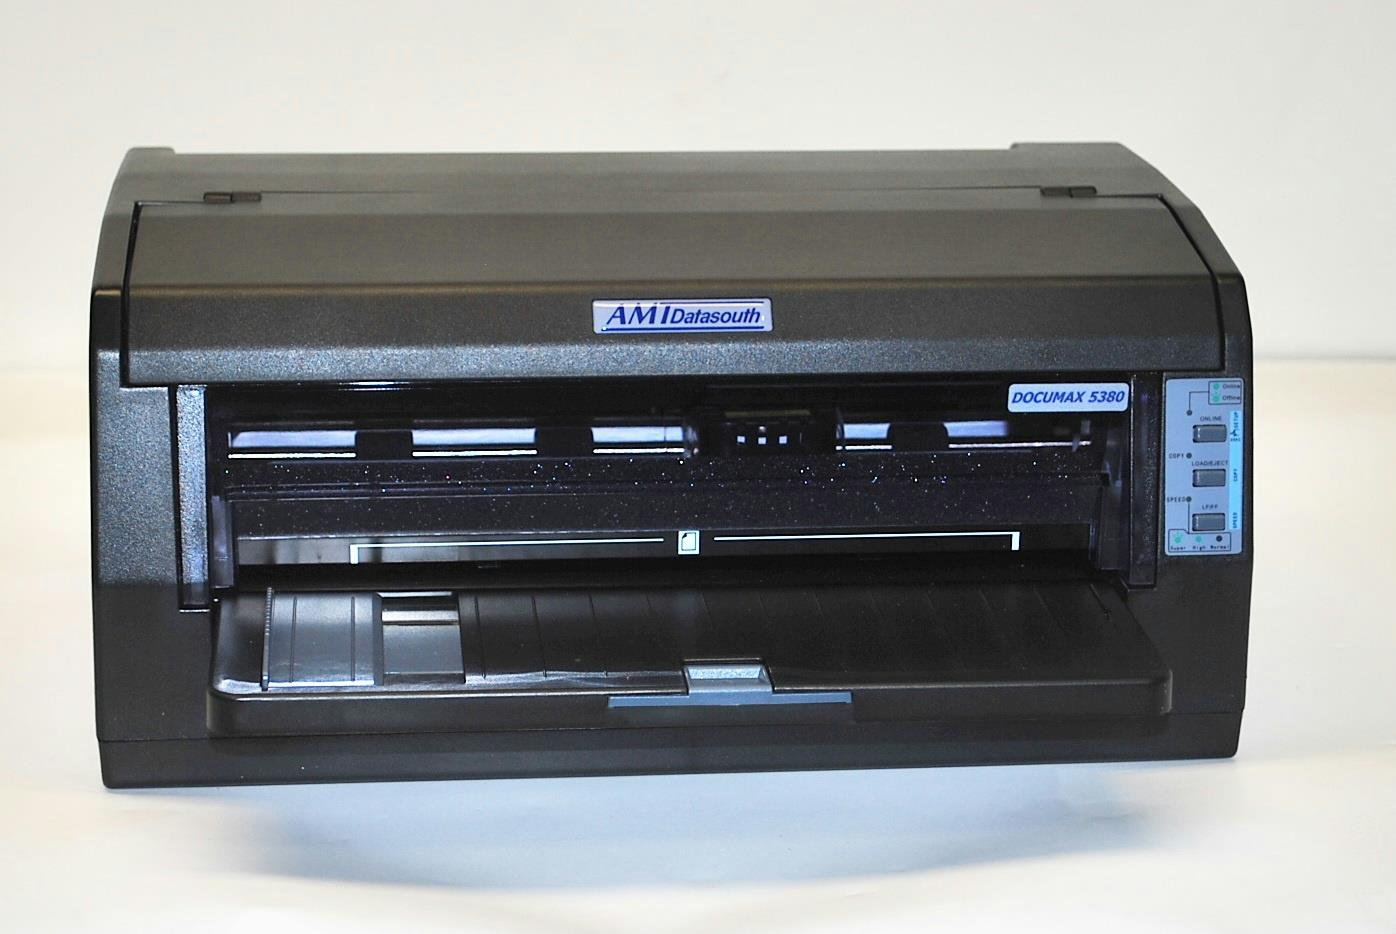 AMT Datasouth Pin-fed Laser Printer Driver (2019)